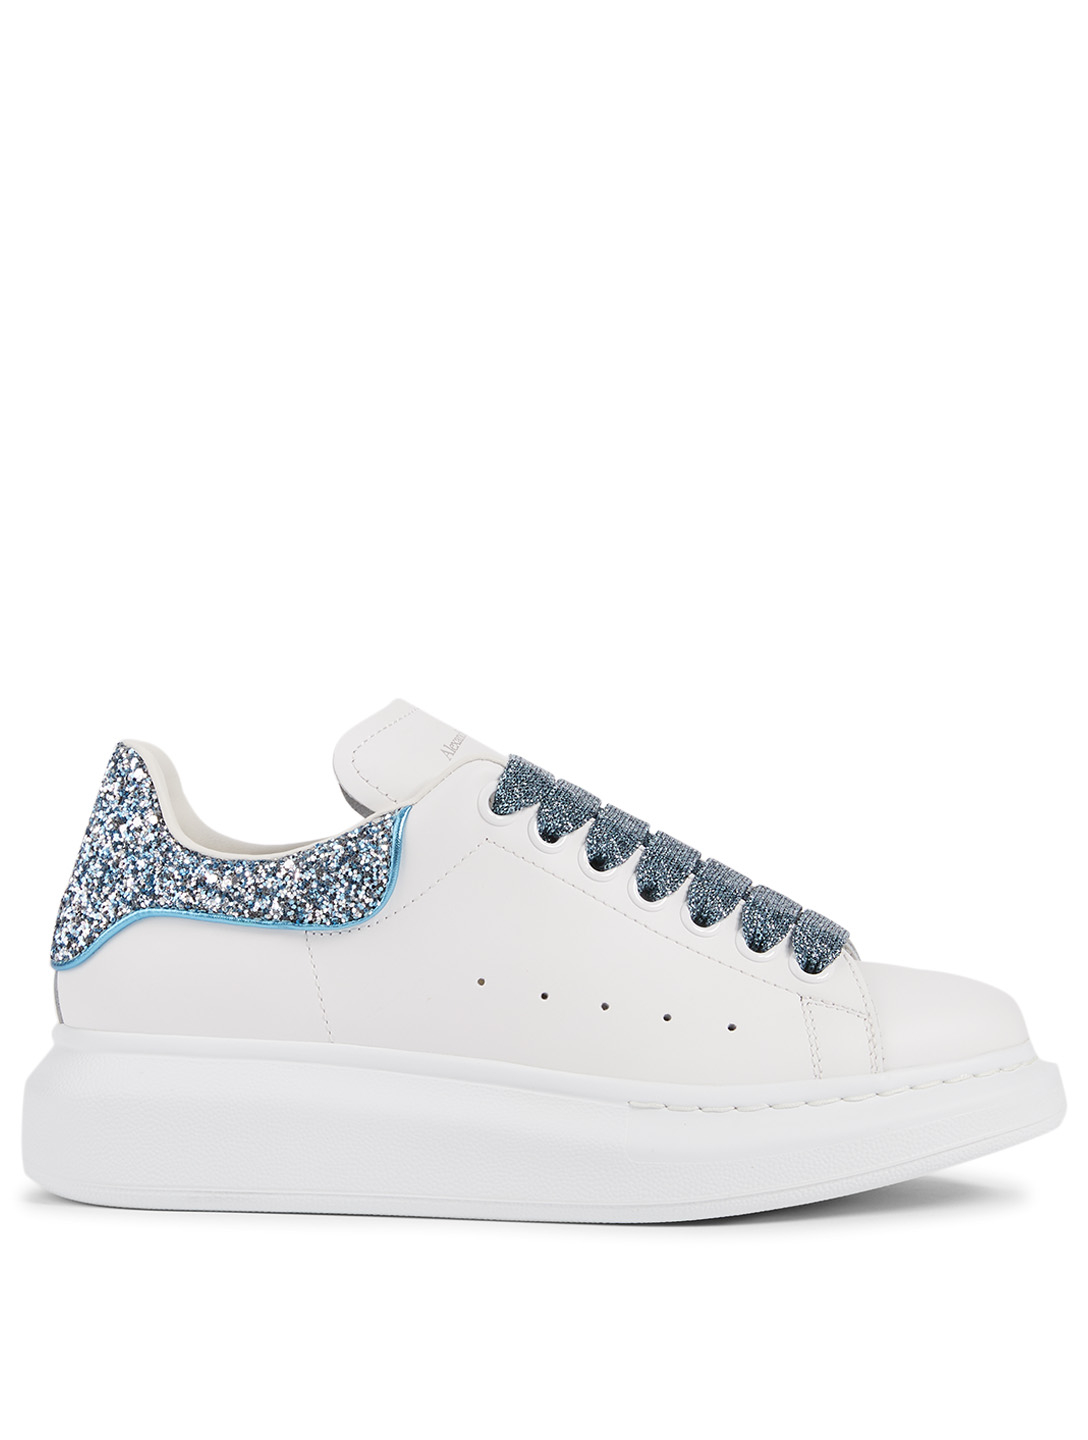 ALEXANDER MCQUEEN Oversized Leather Sneakers With Glitter Women's White